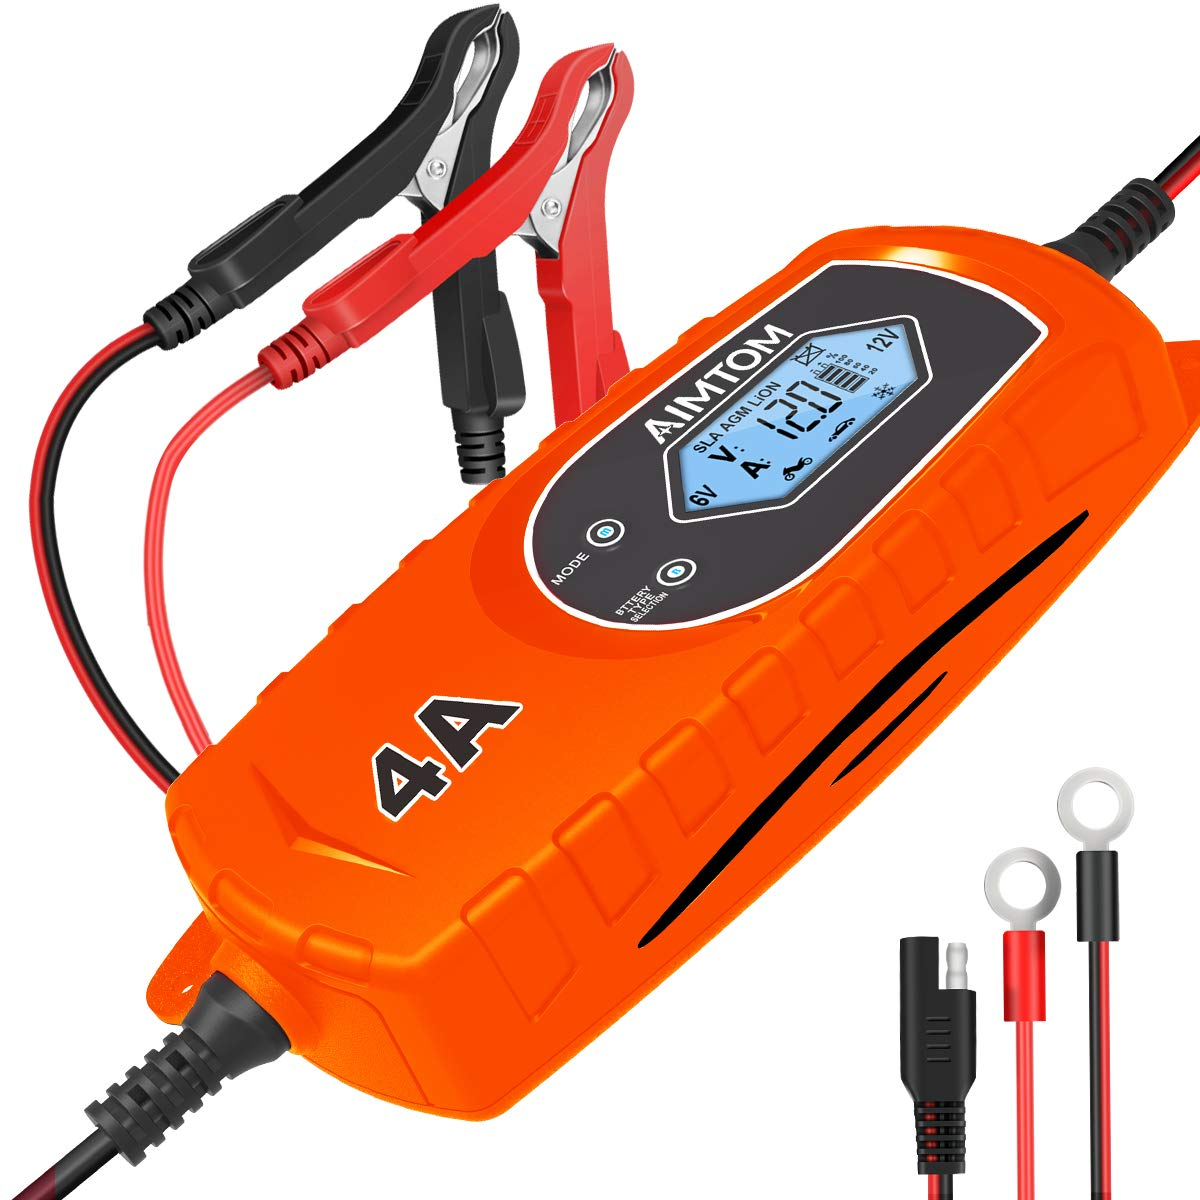 AIMTOM Smart Battery Charger 4 Amp 6/12V Fully Automatic Maintainer 8-Stage Charging Process for Car, Truck, Motorcycle, Boat, RV, SUV, ATV Fits SLA, Wet, MF, Gel, VRLA, AGM, EFB, Lion Batteries IBC-4000